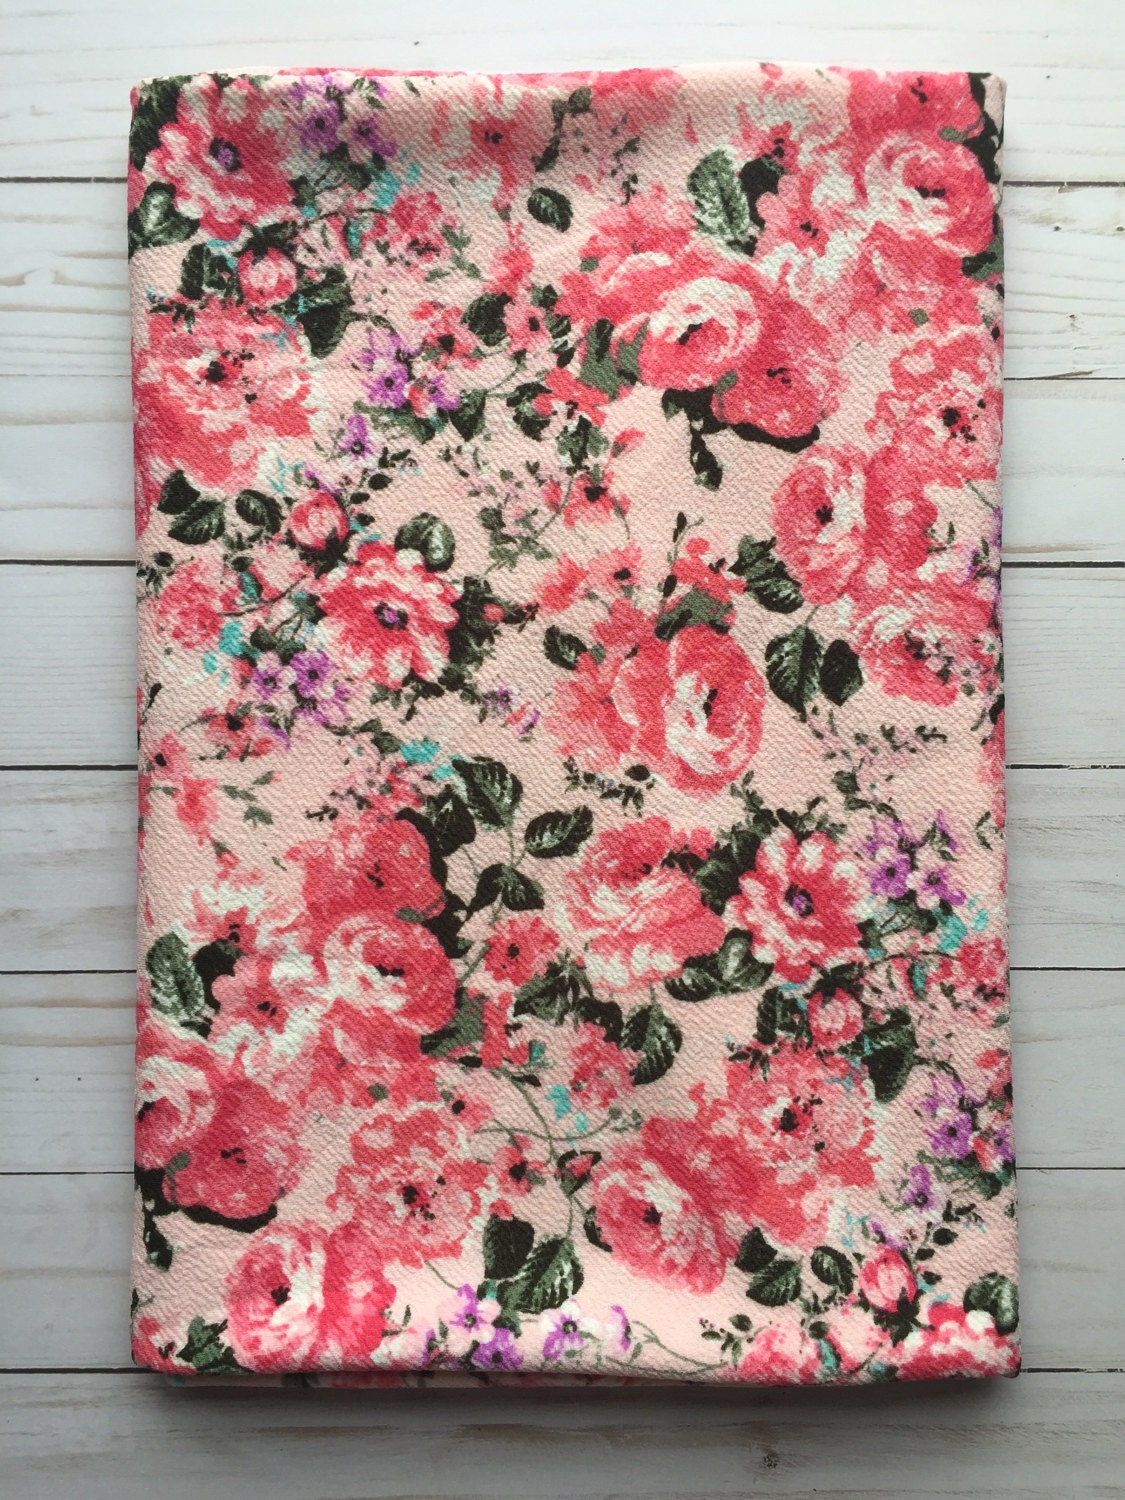 Design your own t shirt liverpool - Pink Floral Liverpool Knit Stretch Fabric 4 Way Stretch Bty By The Yard